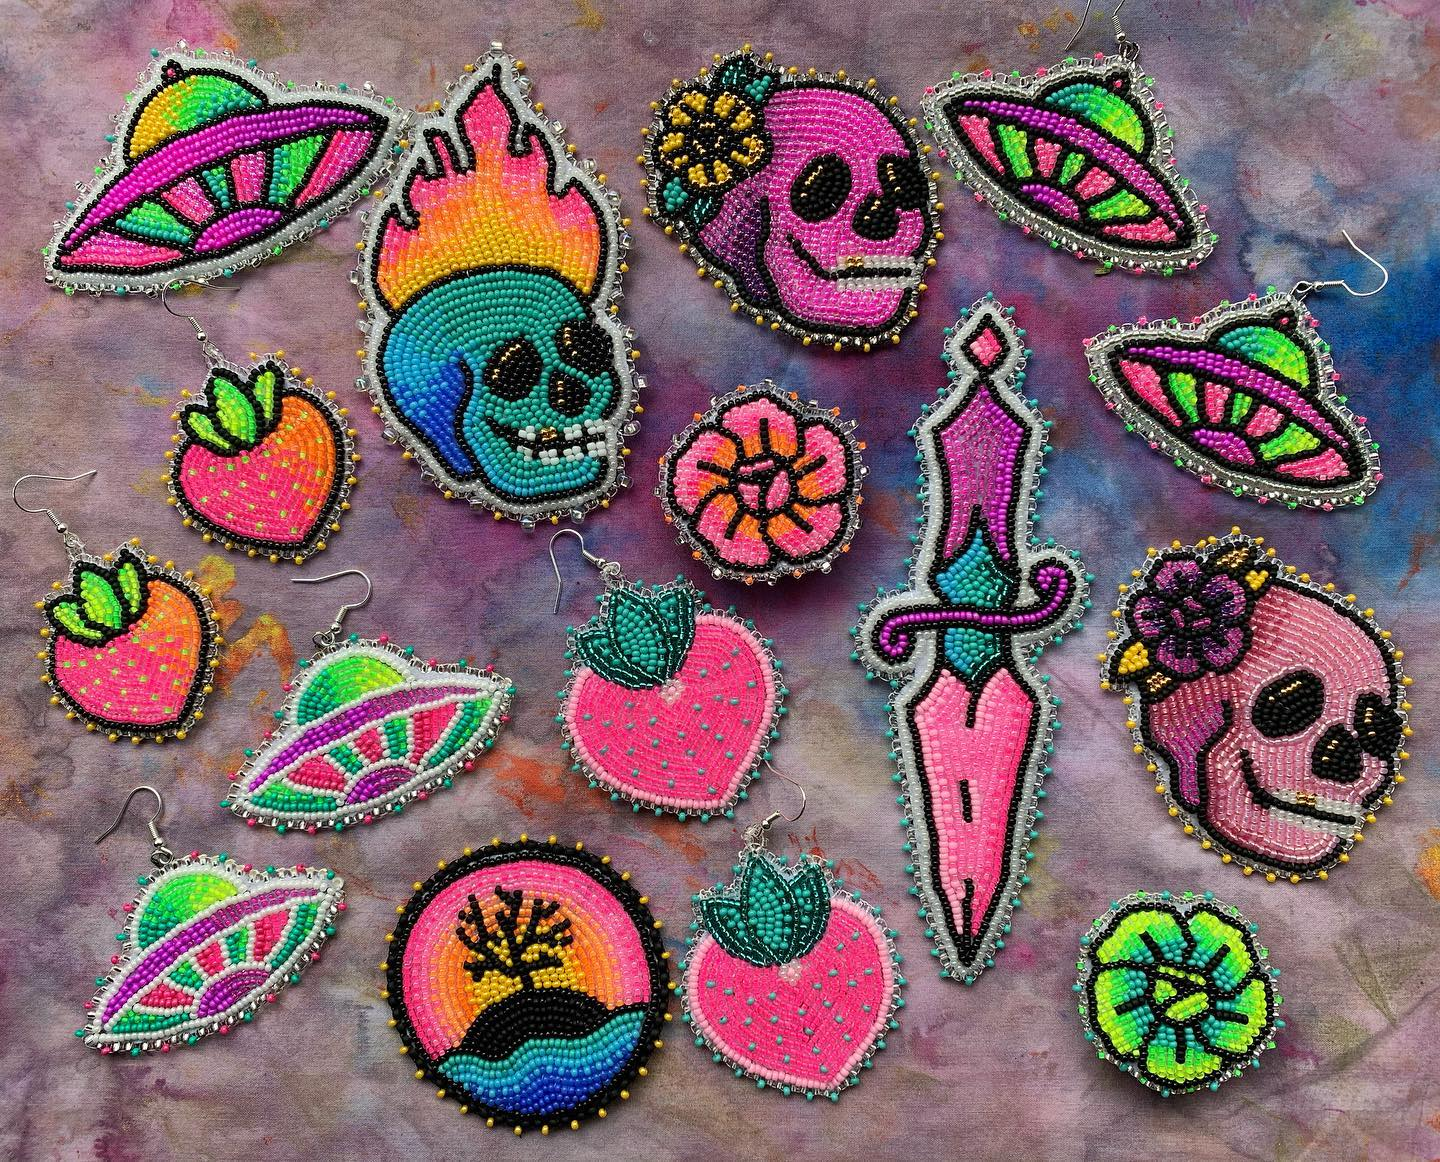 A collection of Flourish and Grow's beaded works including neon UFOs and skulls.